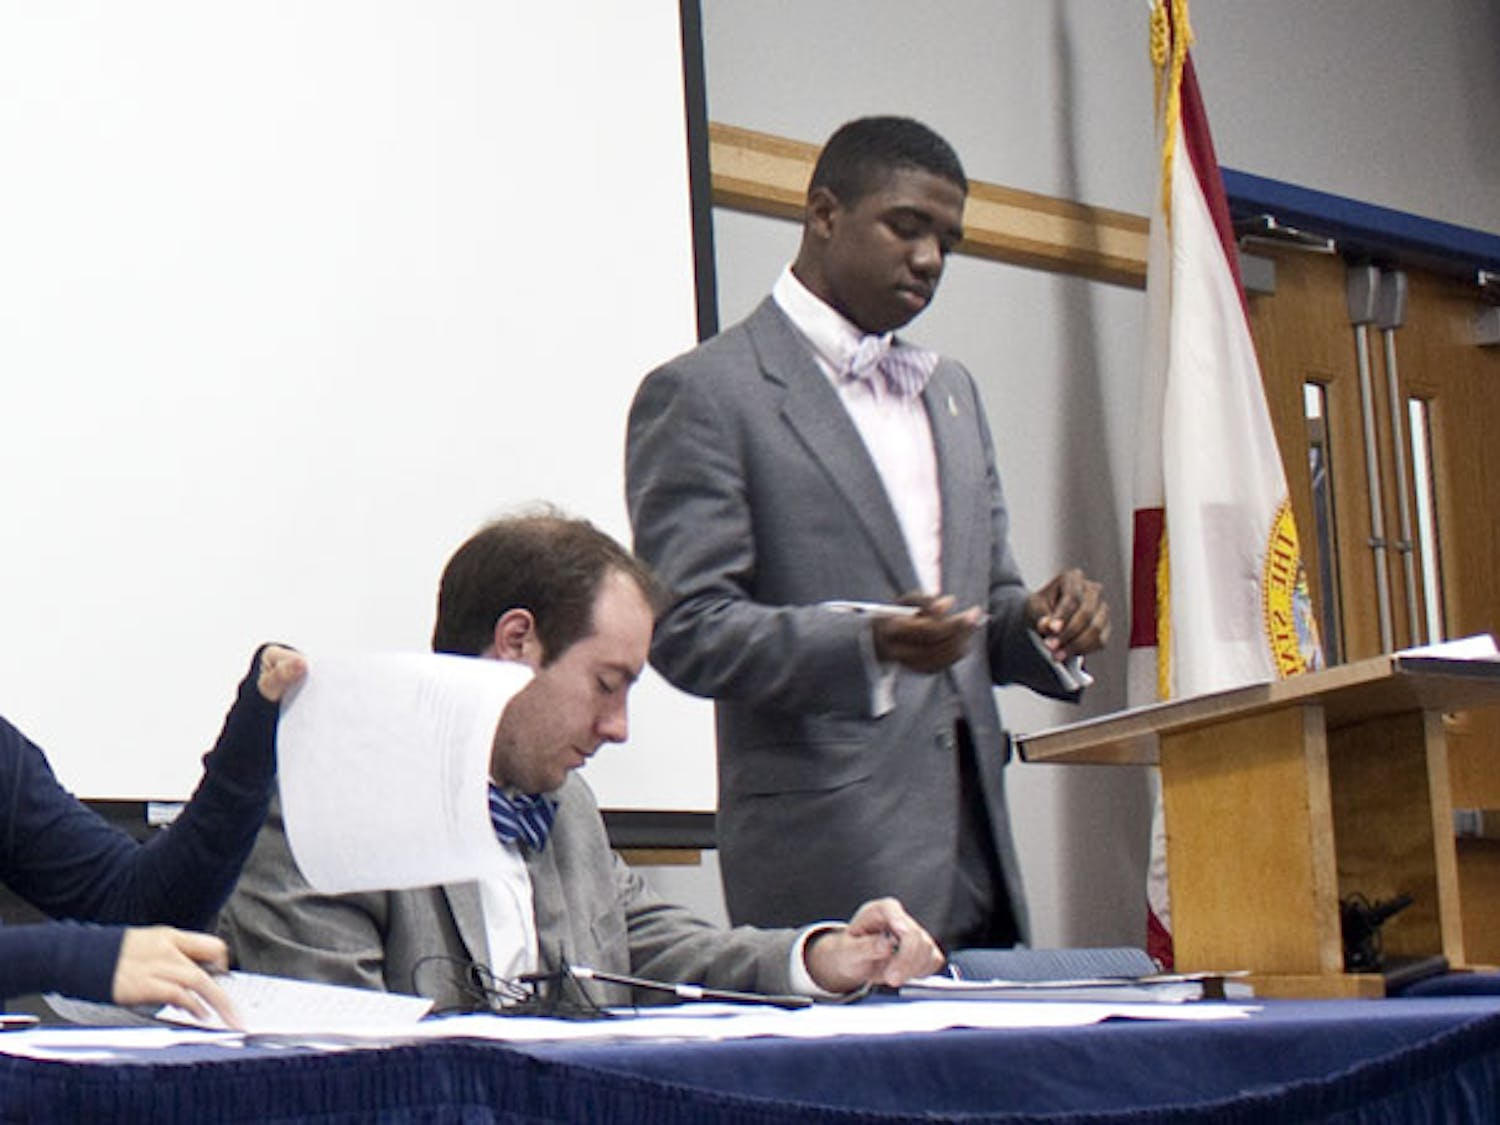 Senate President Aundre Price expressed his happiness about senators getting involved and being proactive during the last Student Senate meeting of the semester on Tuesday night.